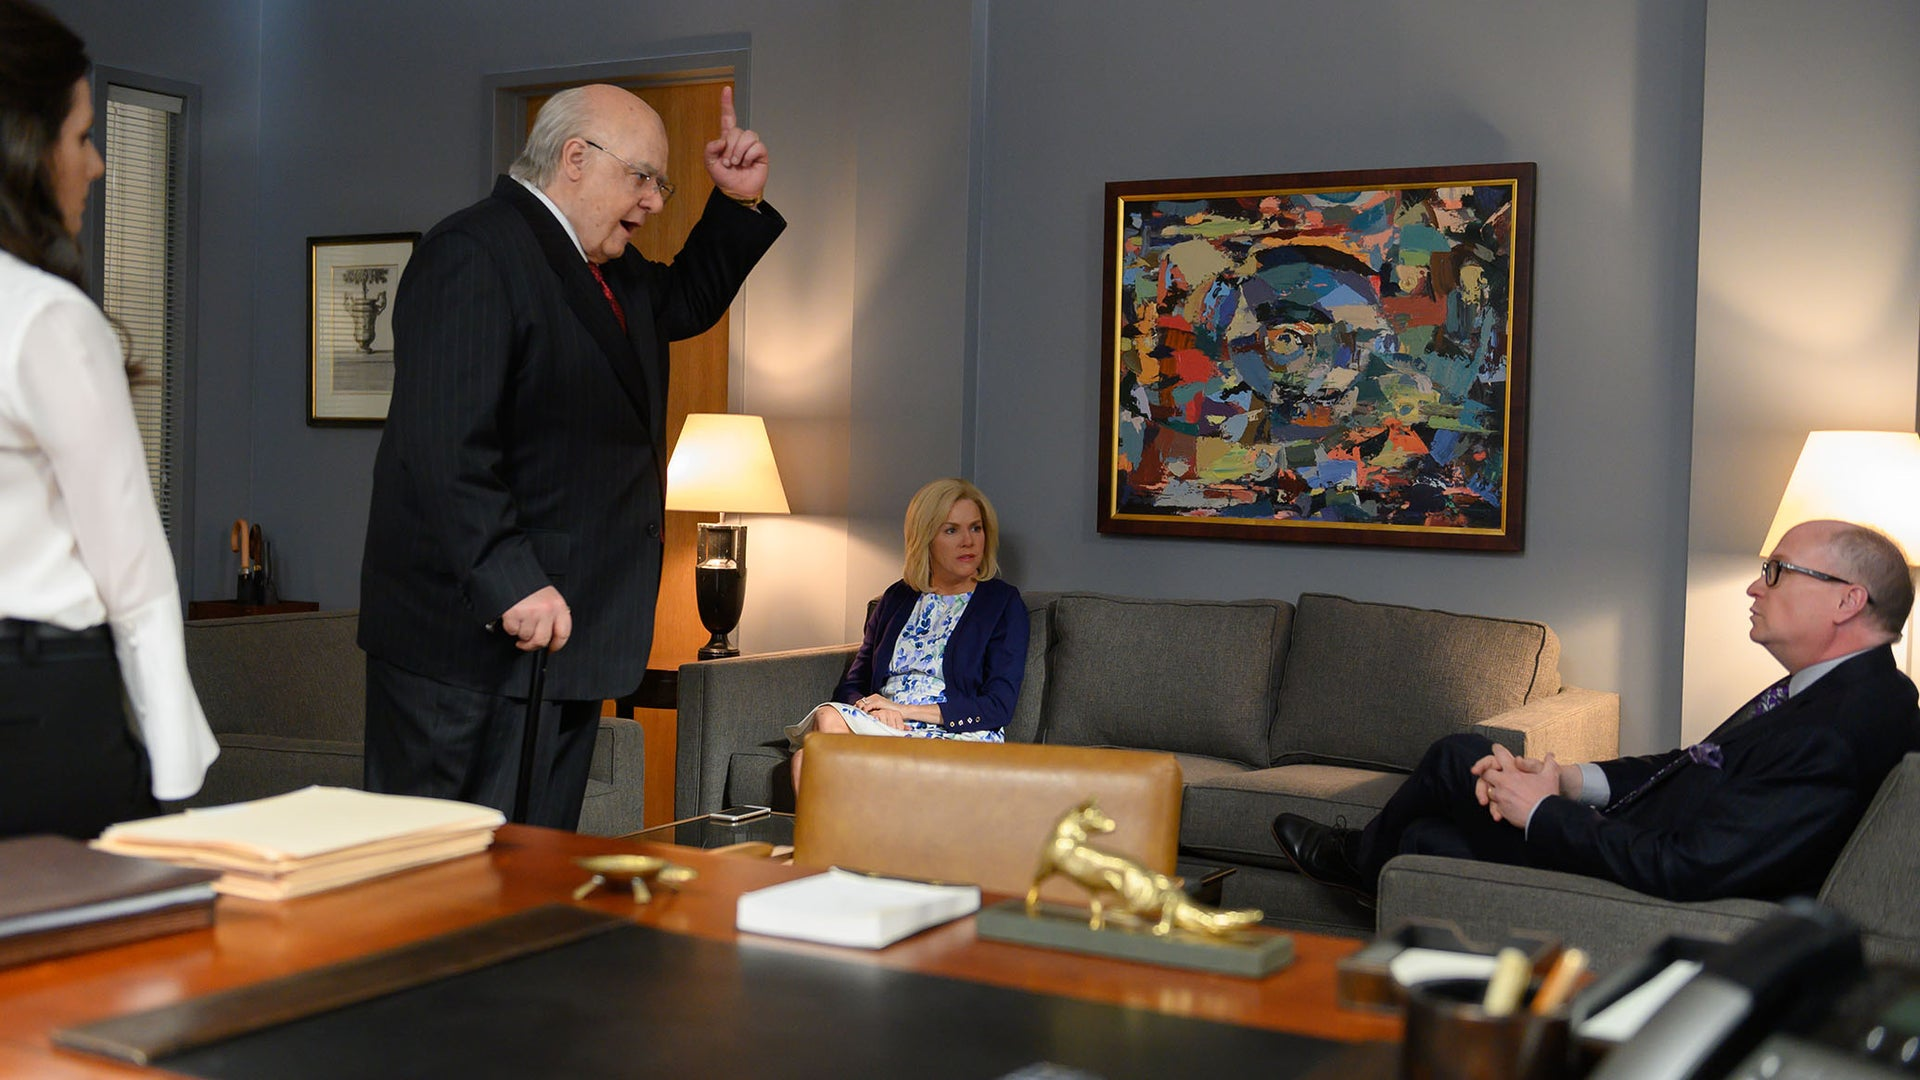 Aleksa Palladino as Judy Laterza, Russell Crowe as Roger Ailes, Sienna Miller as Elizabeth Ailes, and John Harrington Bland as Peter Johnson Jr. in The Loudest Voice